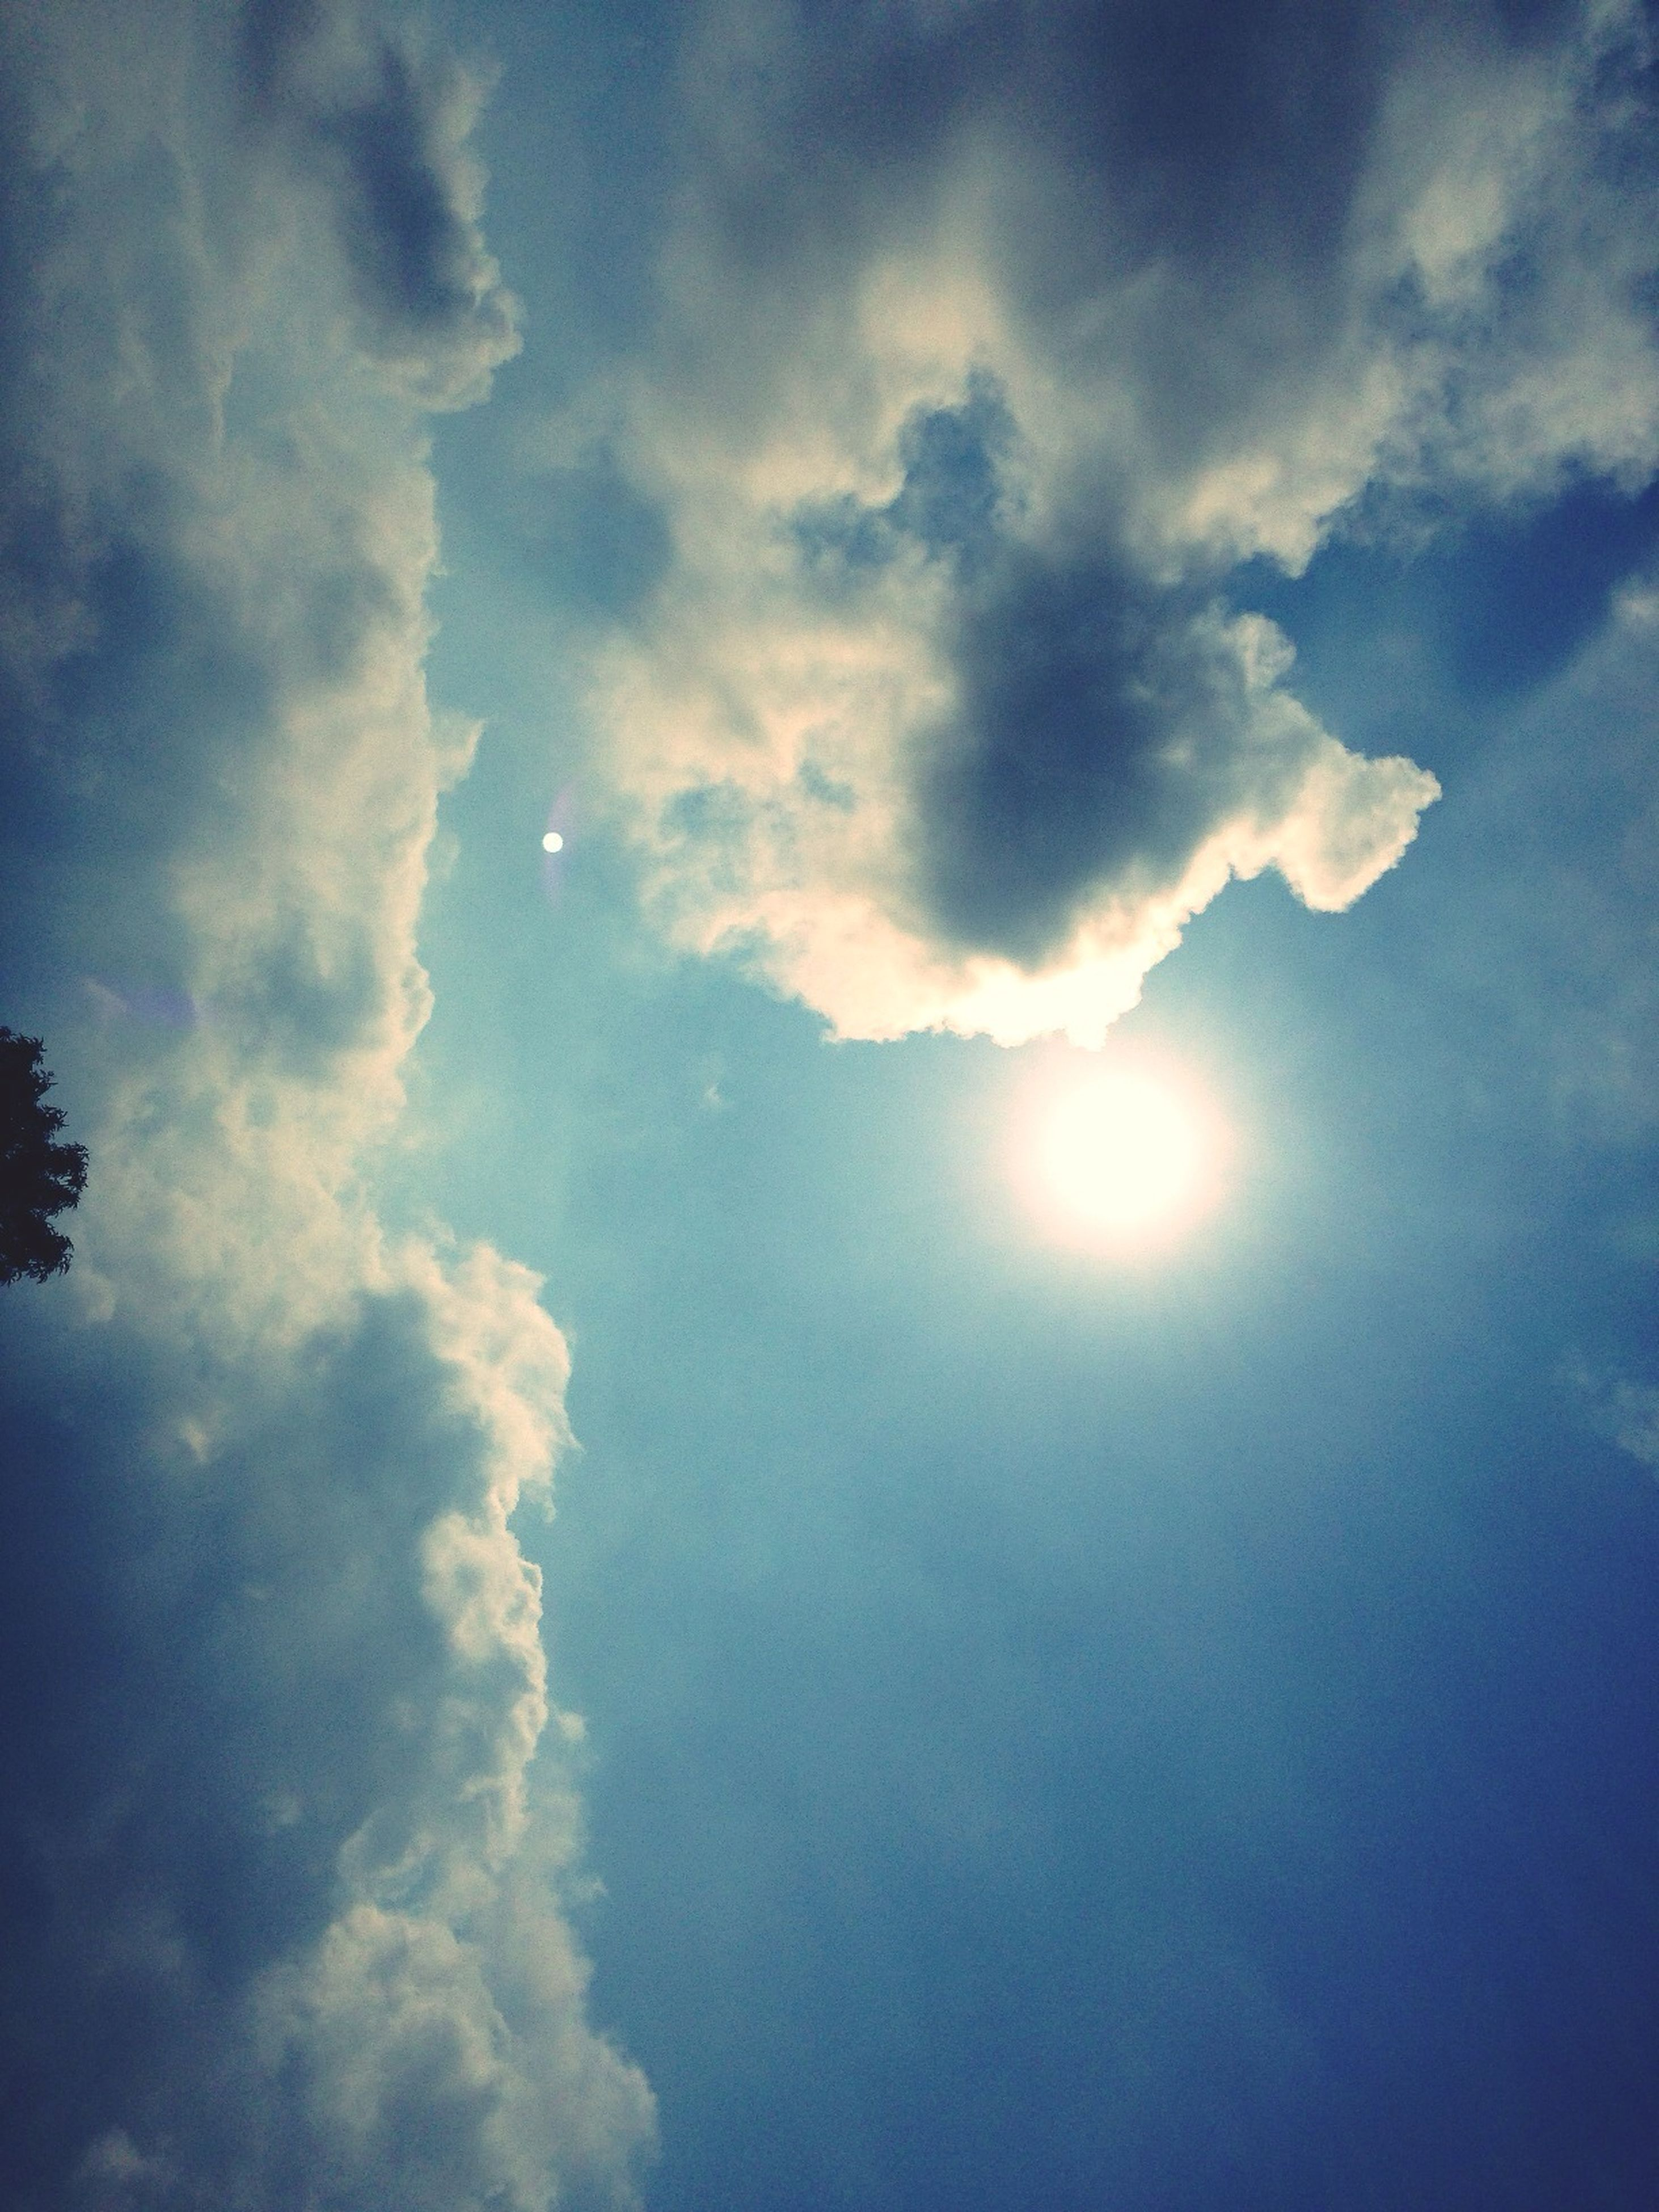 sky, low angle view, cloud - sky, sun, beauty in nature, sunbeam, tranquility, scenics, tranquil scene, sunlight, nature, cloudy, cloud, sky only, cloudscape, blue, idyllic, lens flare, outdoors, no people